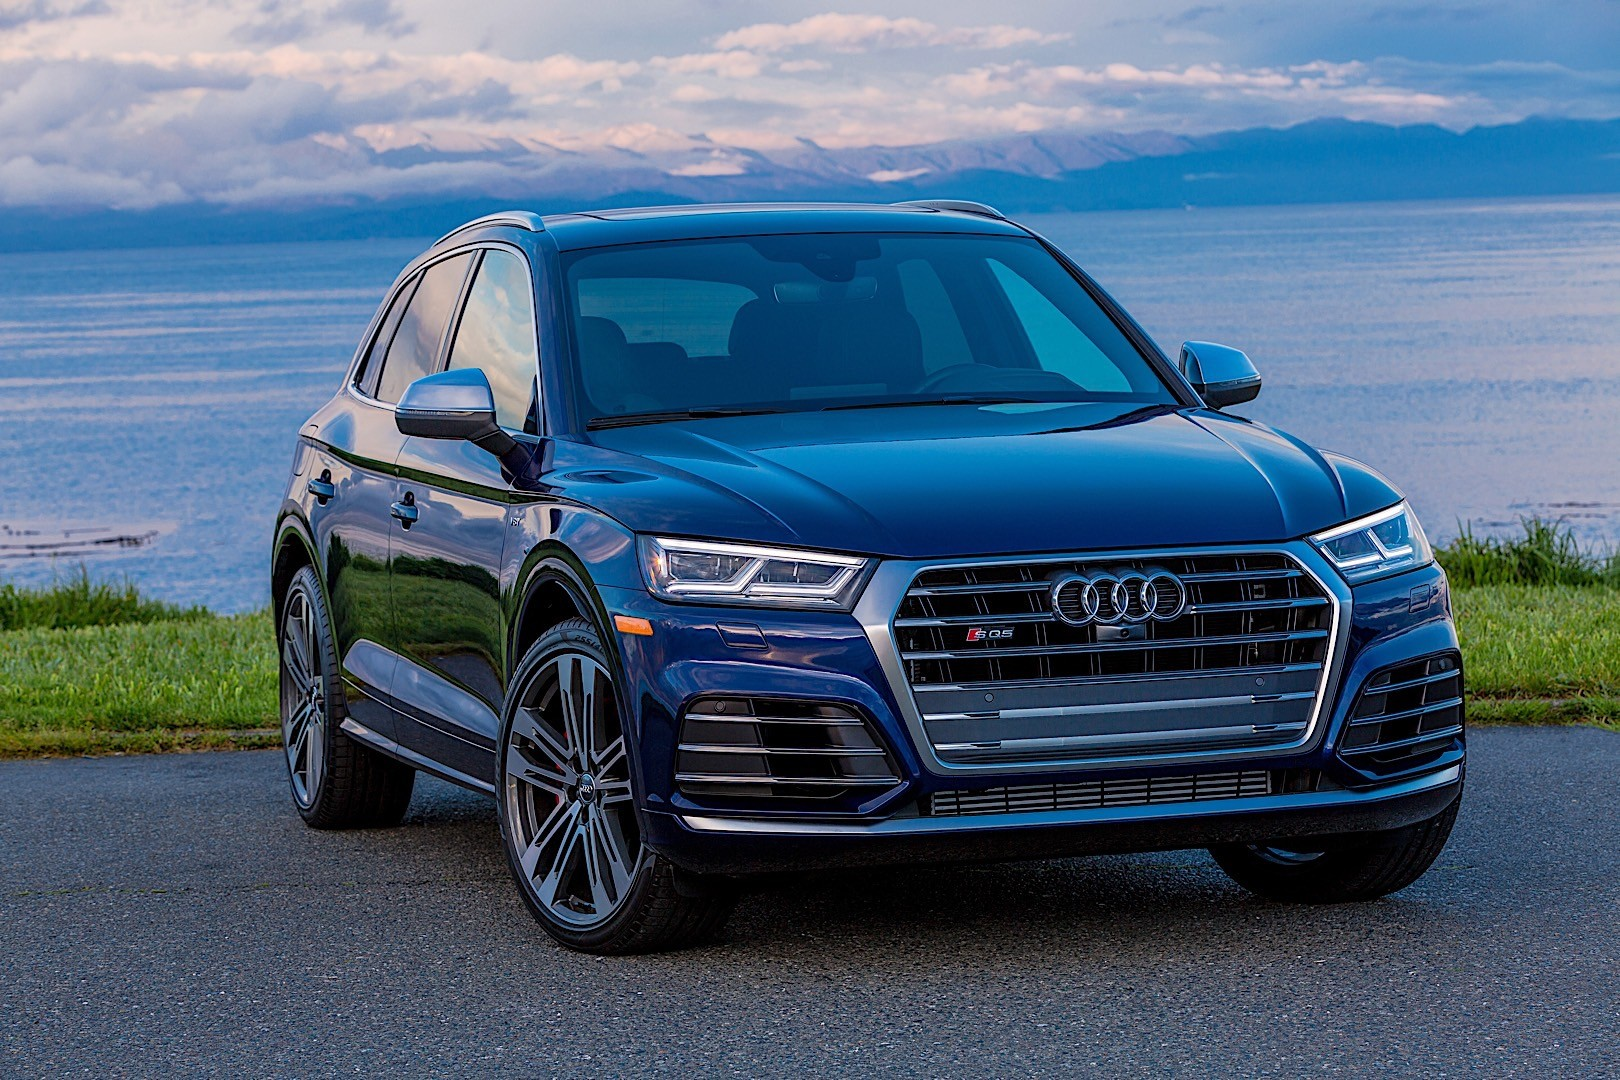 Audi Sq5 2017 Interior >> AUDI SQ5 specs & photos - 2017, 2018 - autoevolution